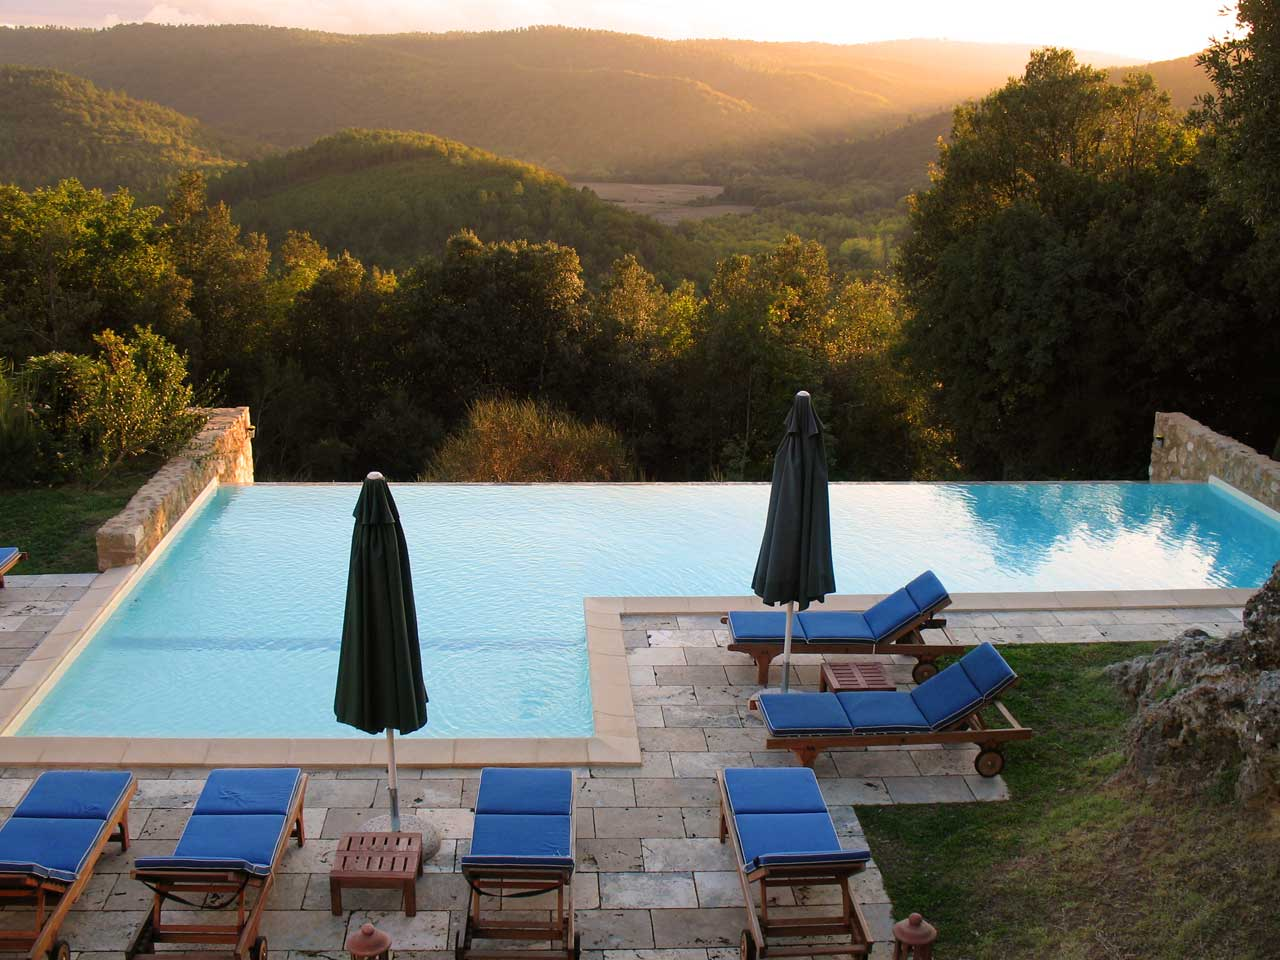 Luxury villa in tuscany with amazing pool